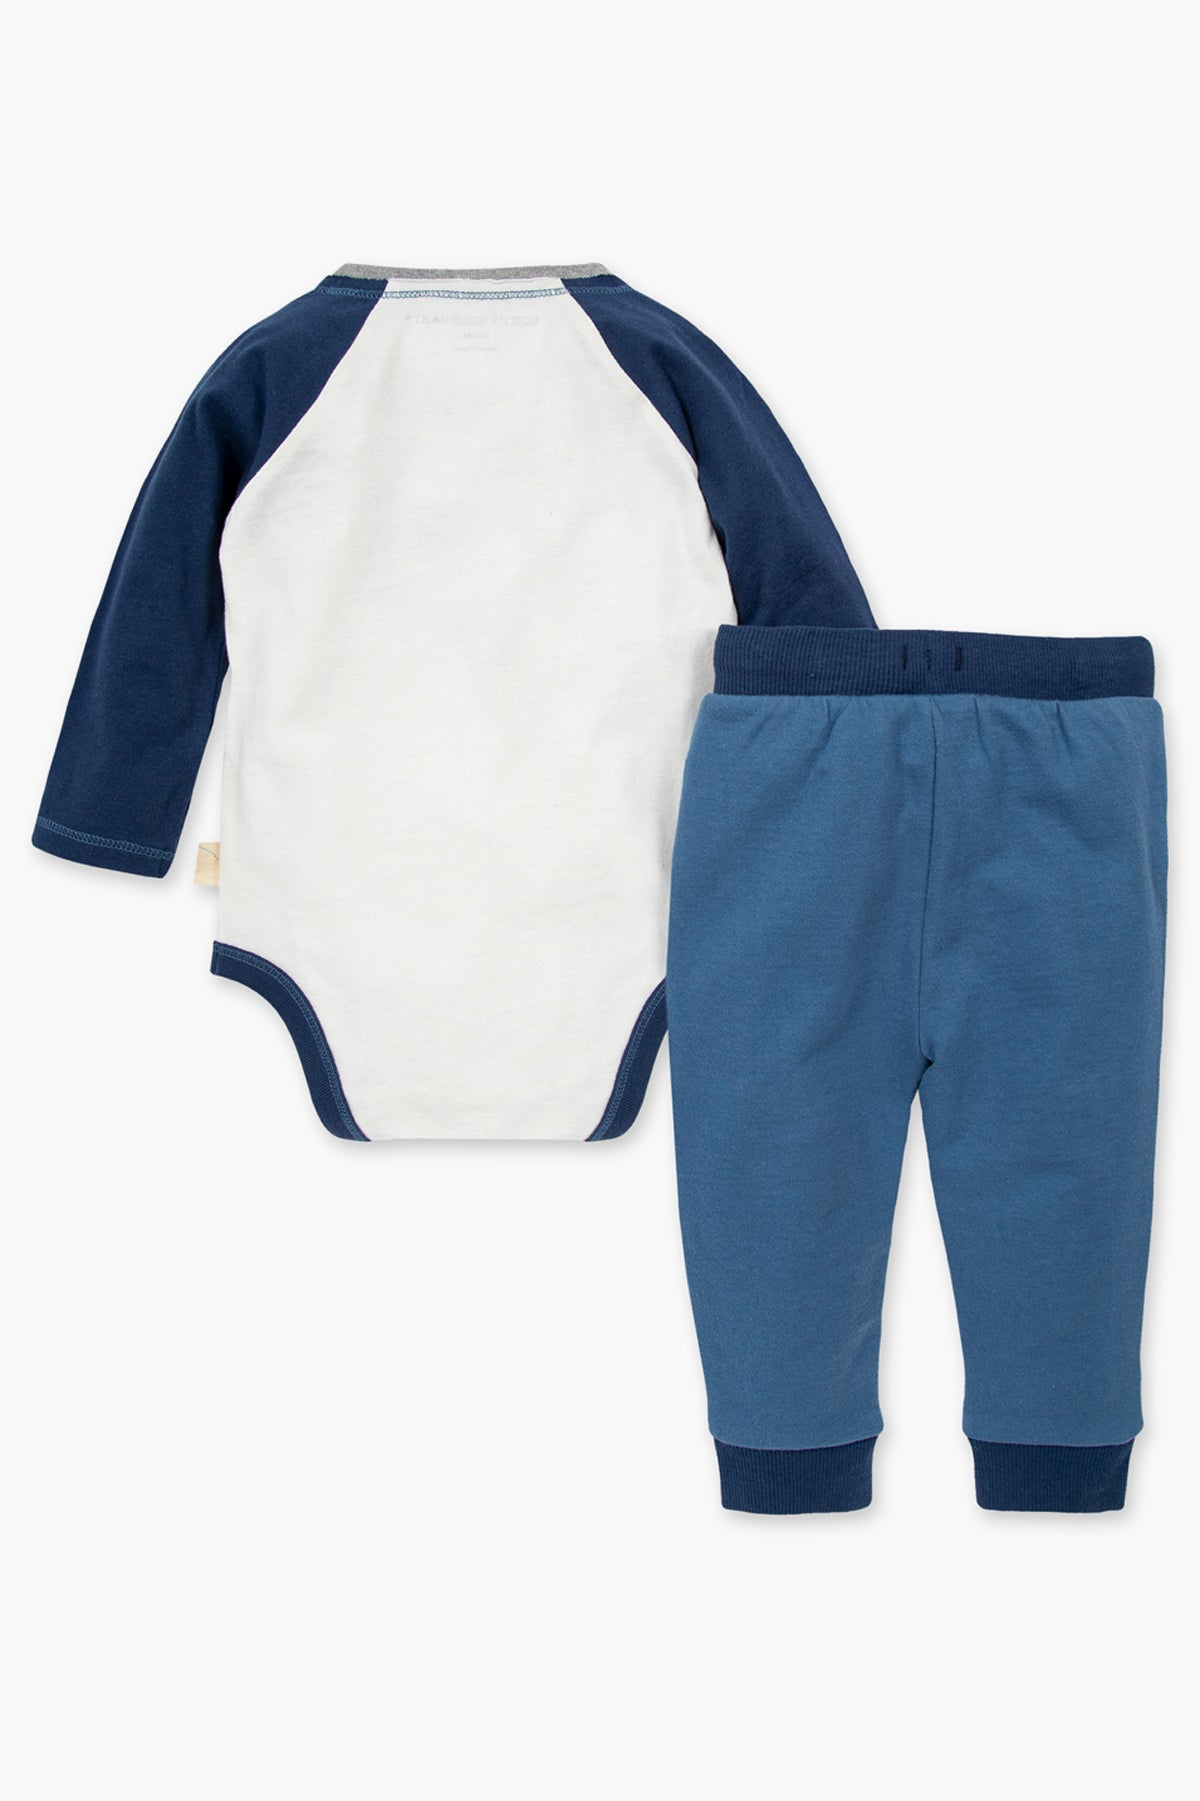 Burt's Bees Roam Tee And Baby Pants Set